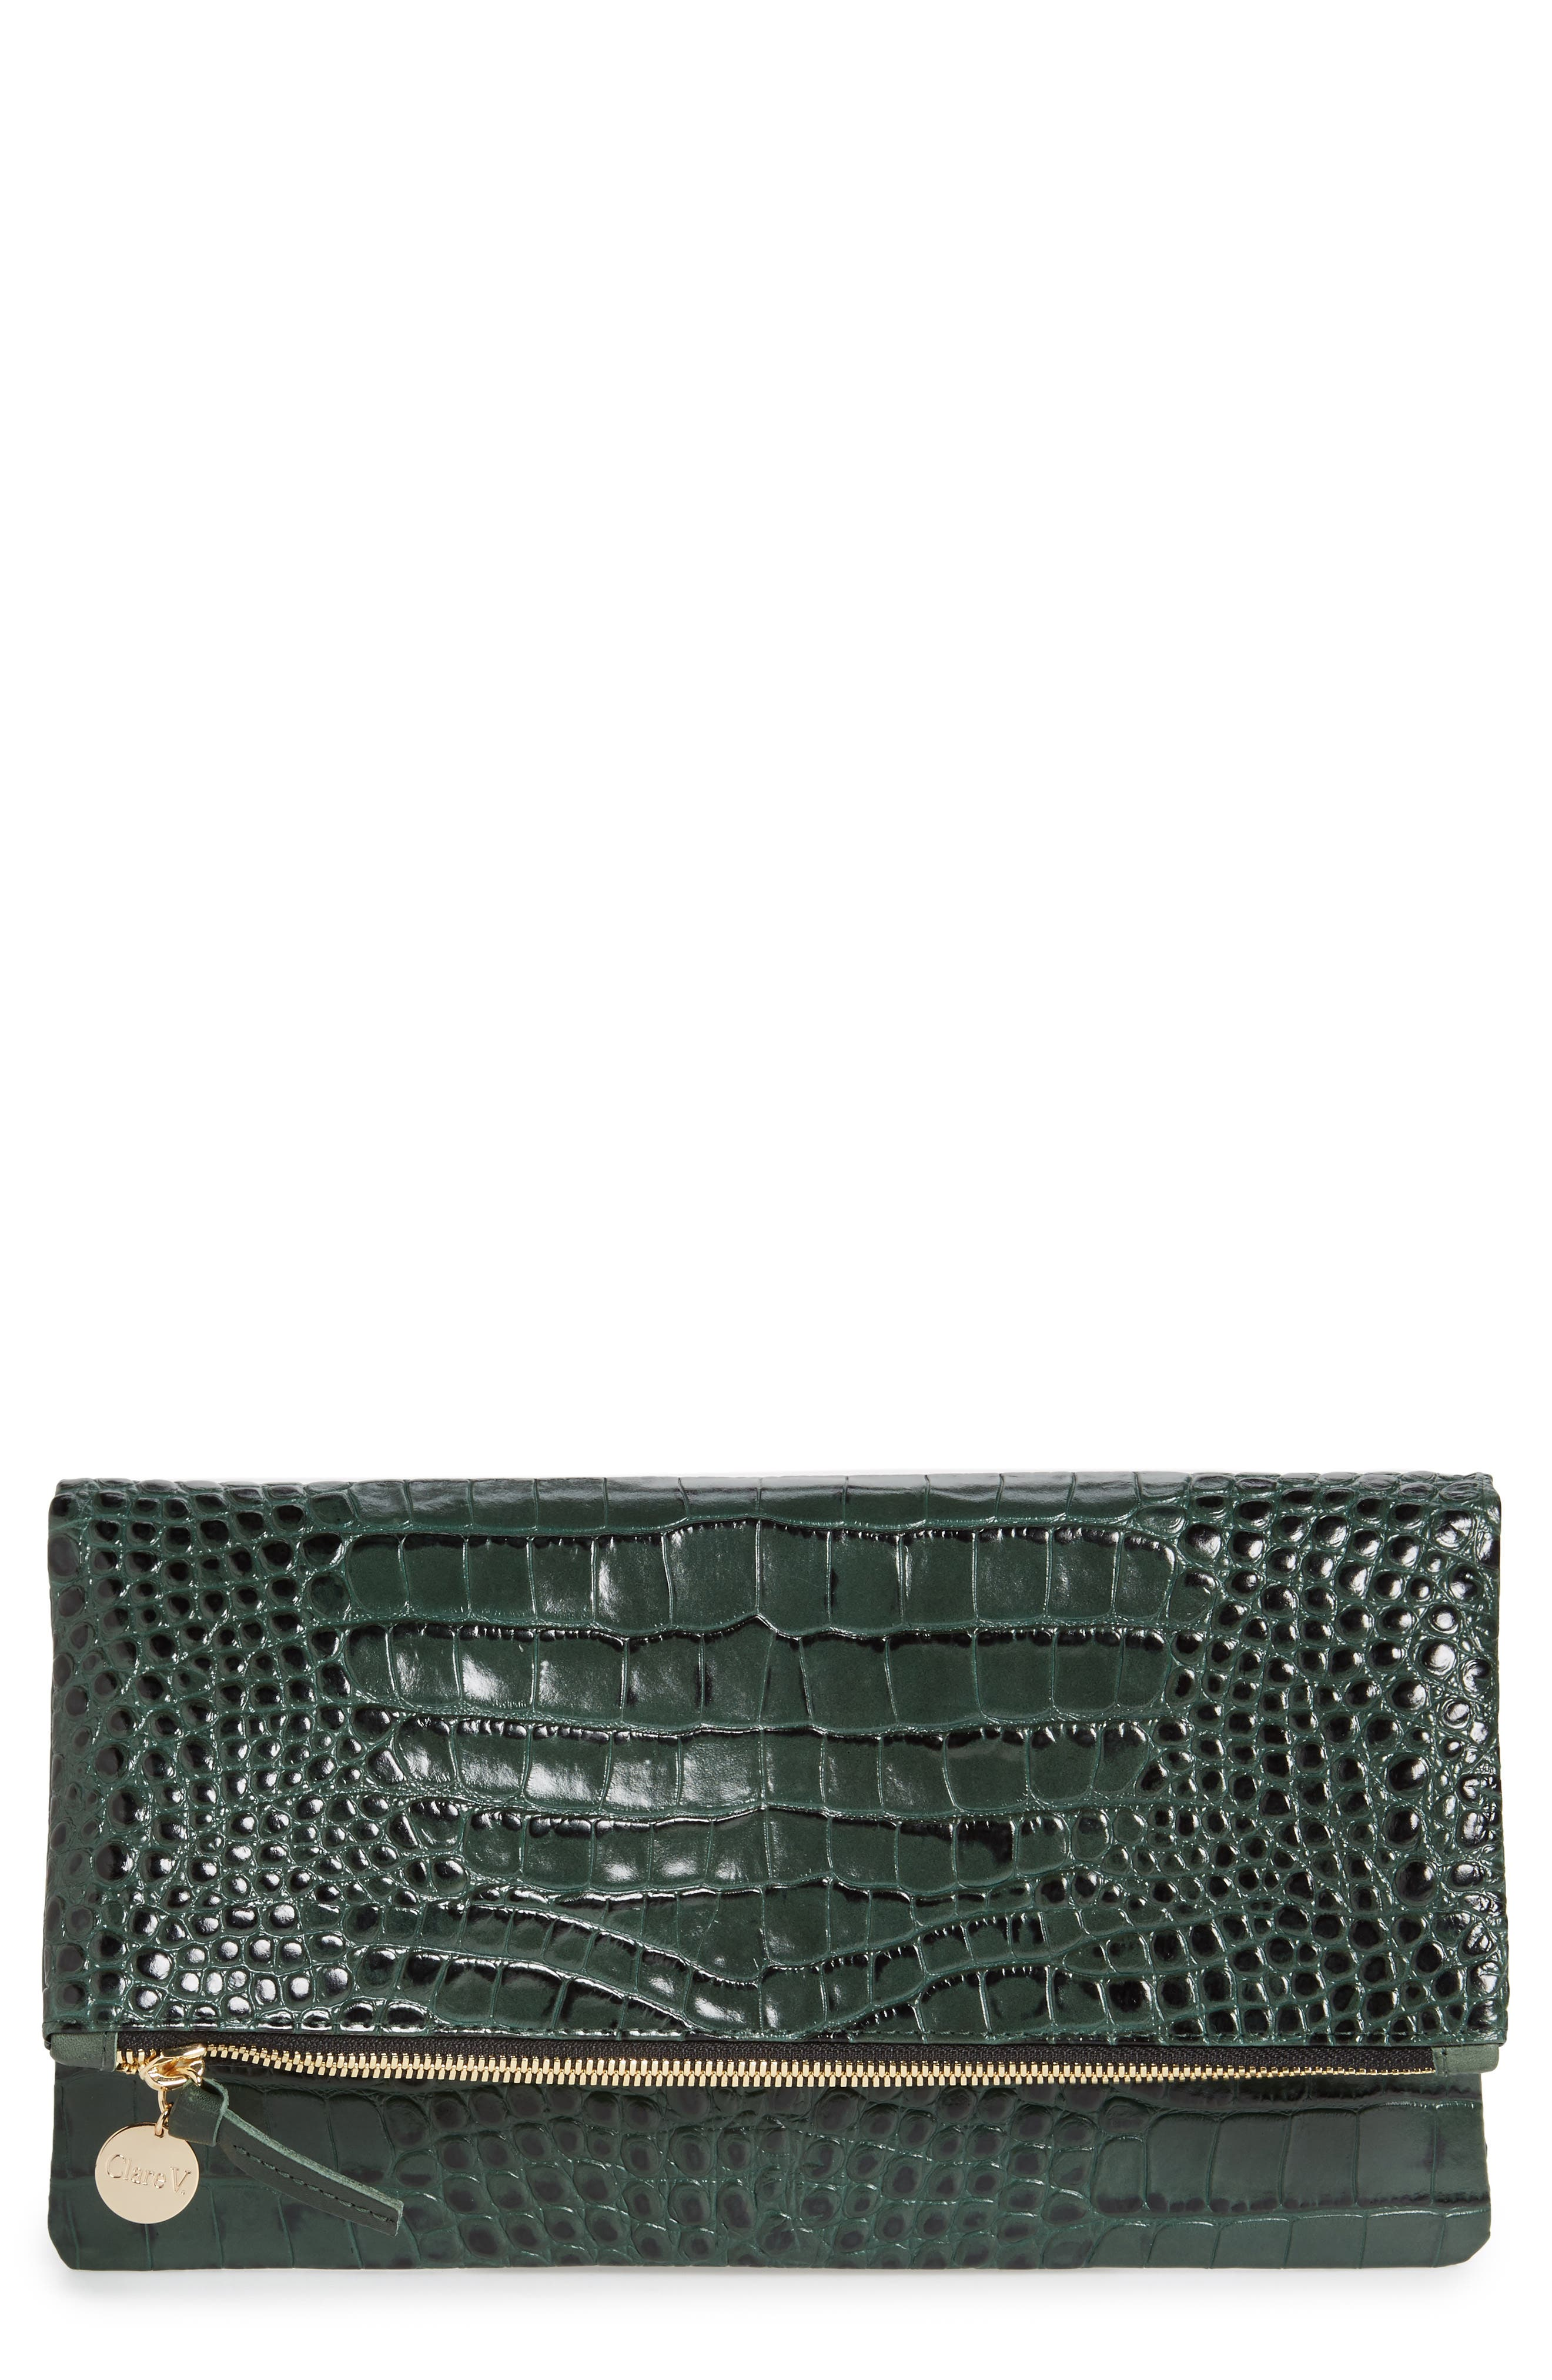 Alternate Image 1 Selected - Clare V. Croc Embossed Leather Foldover Clutch